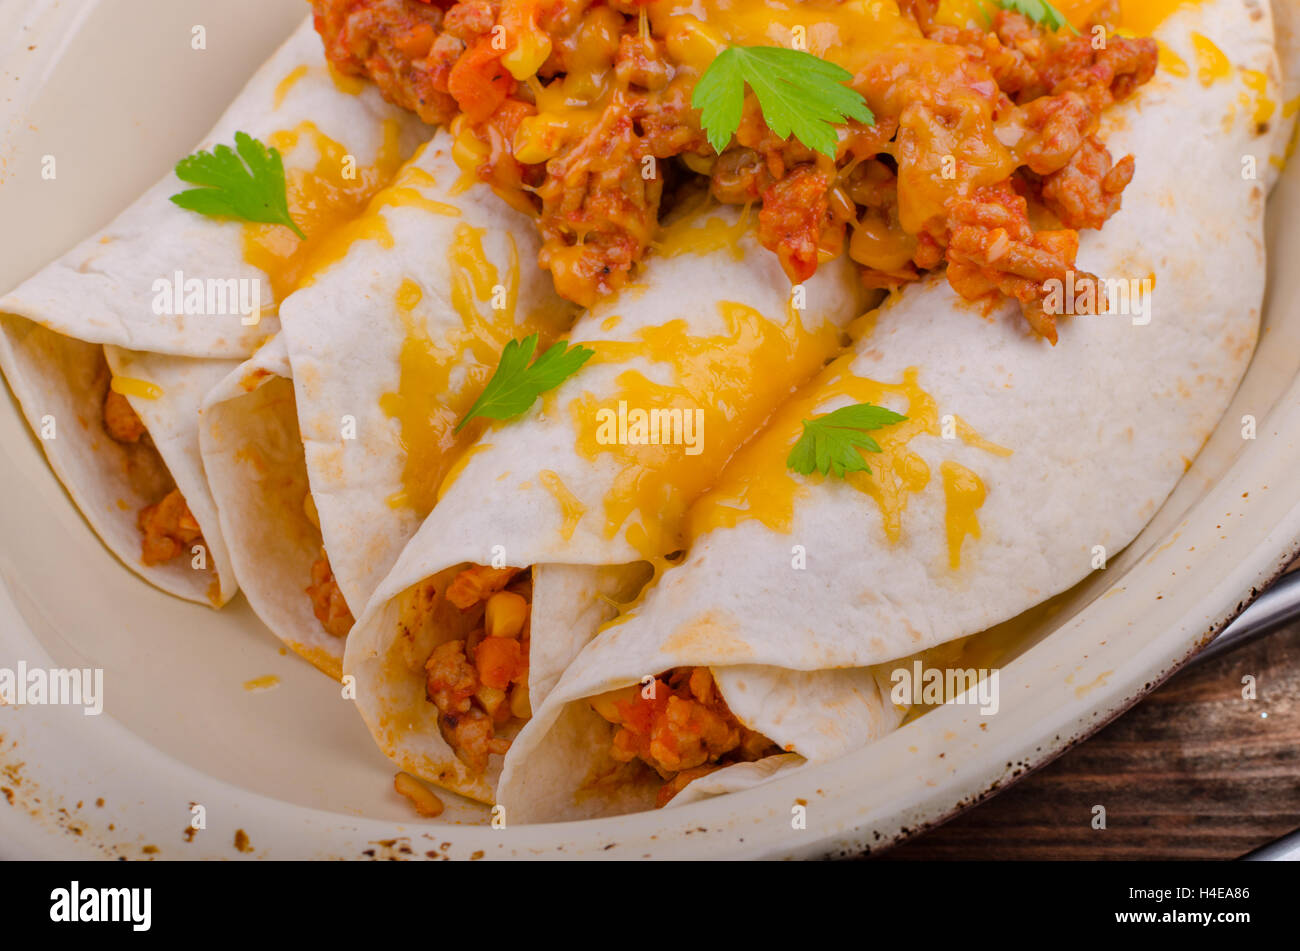 Baked meat tortilla with cheddar cheese, chilli peppers and corn, lime drink Stock Photo